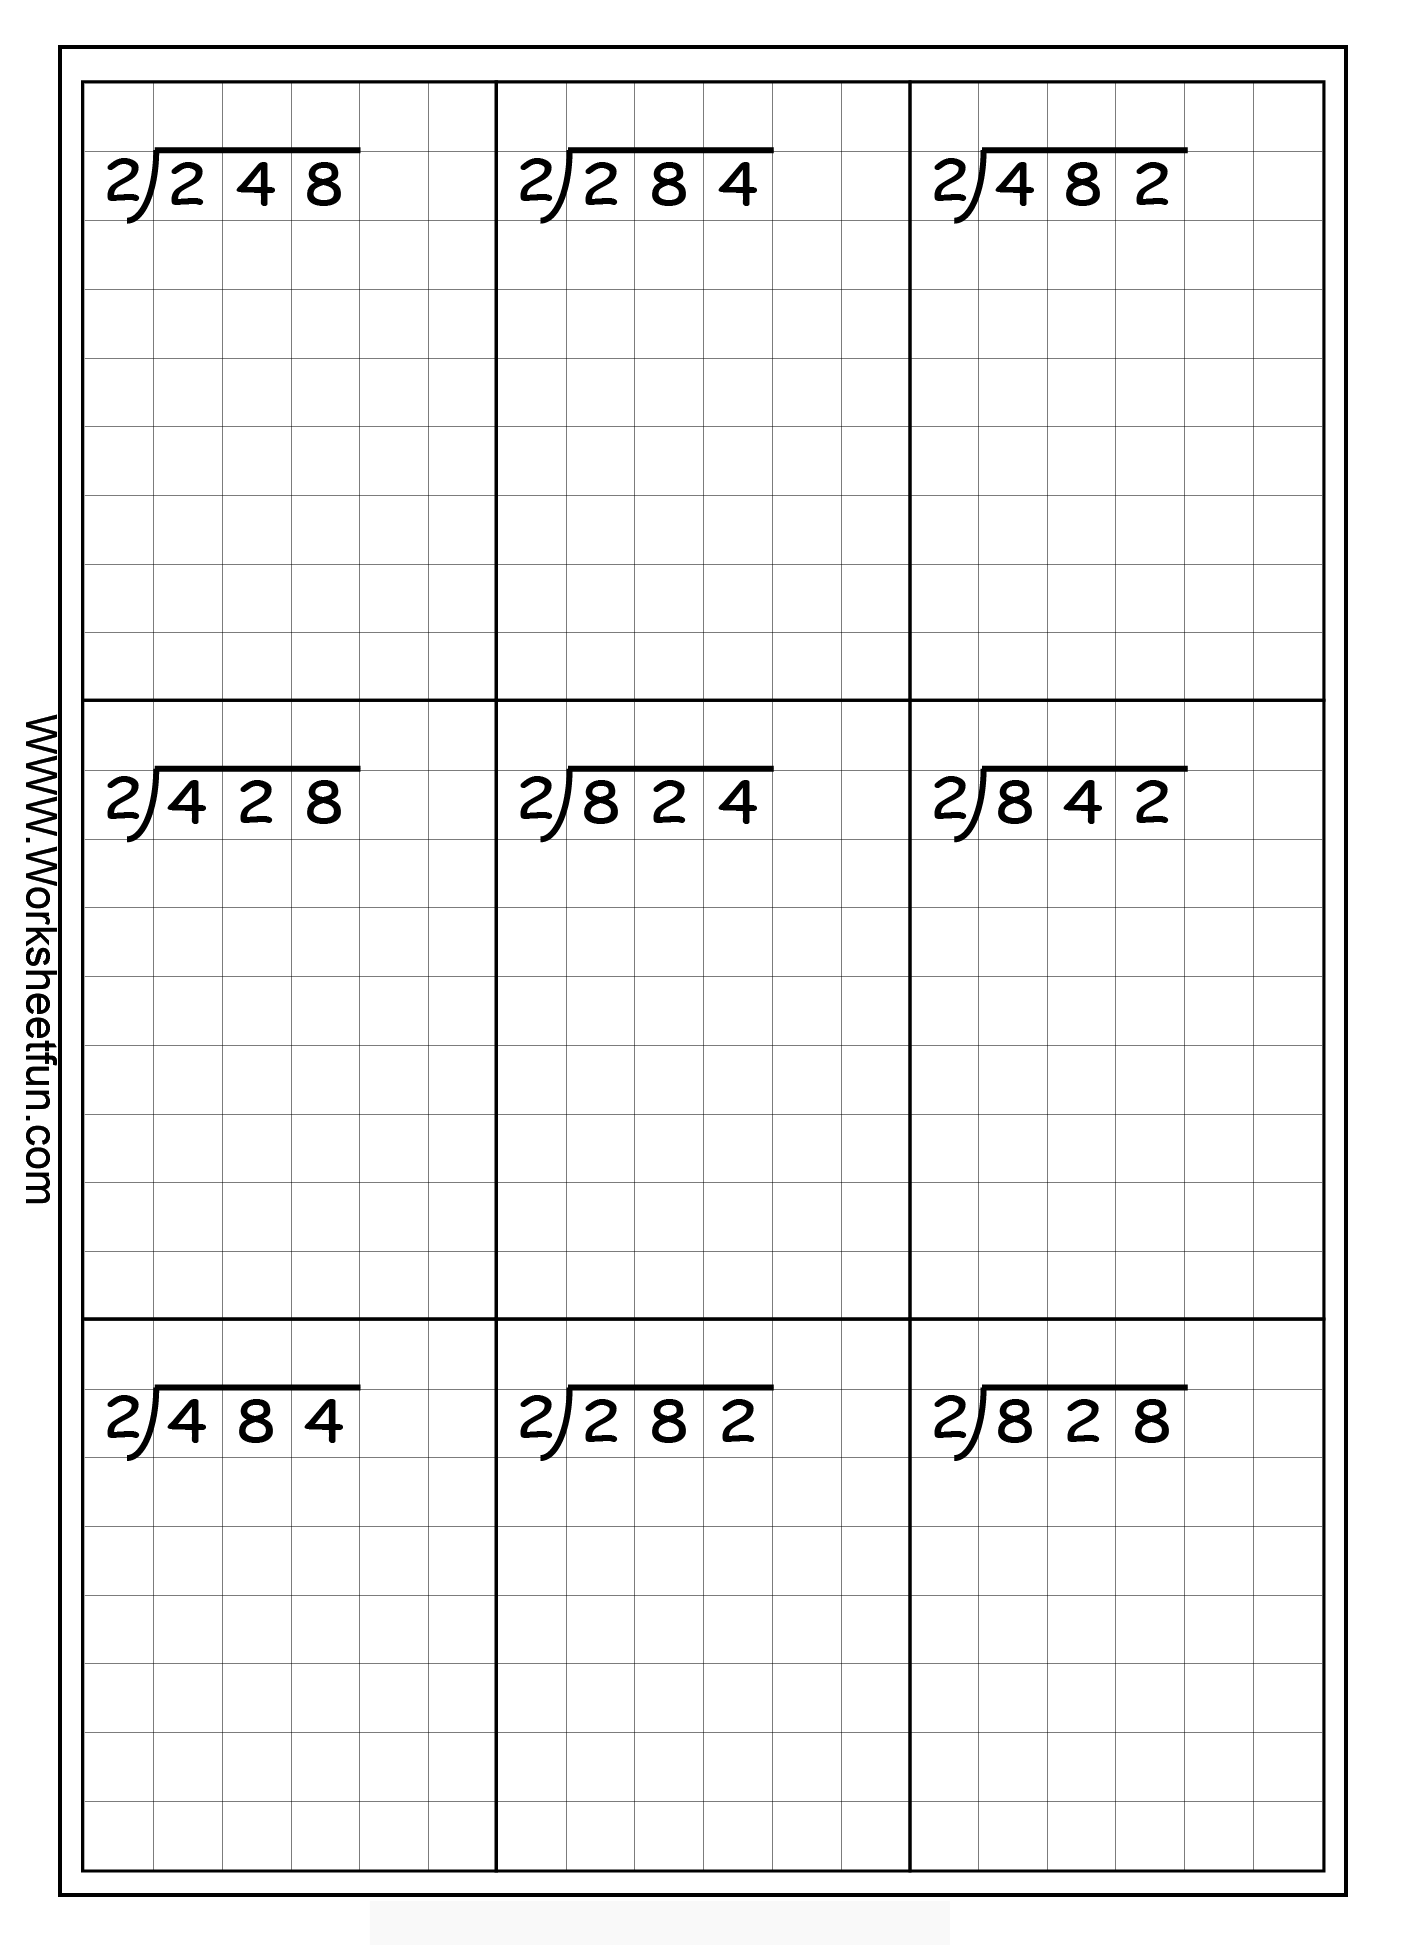 math worksheet : 1000 images about division on pinterest  long division  : Division With Remainder Worksheet